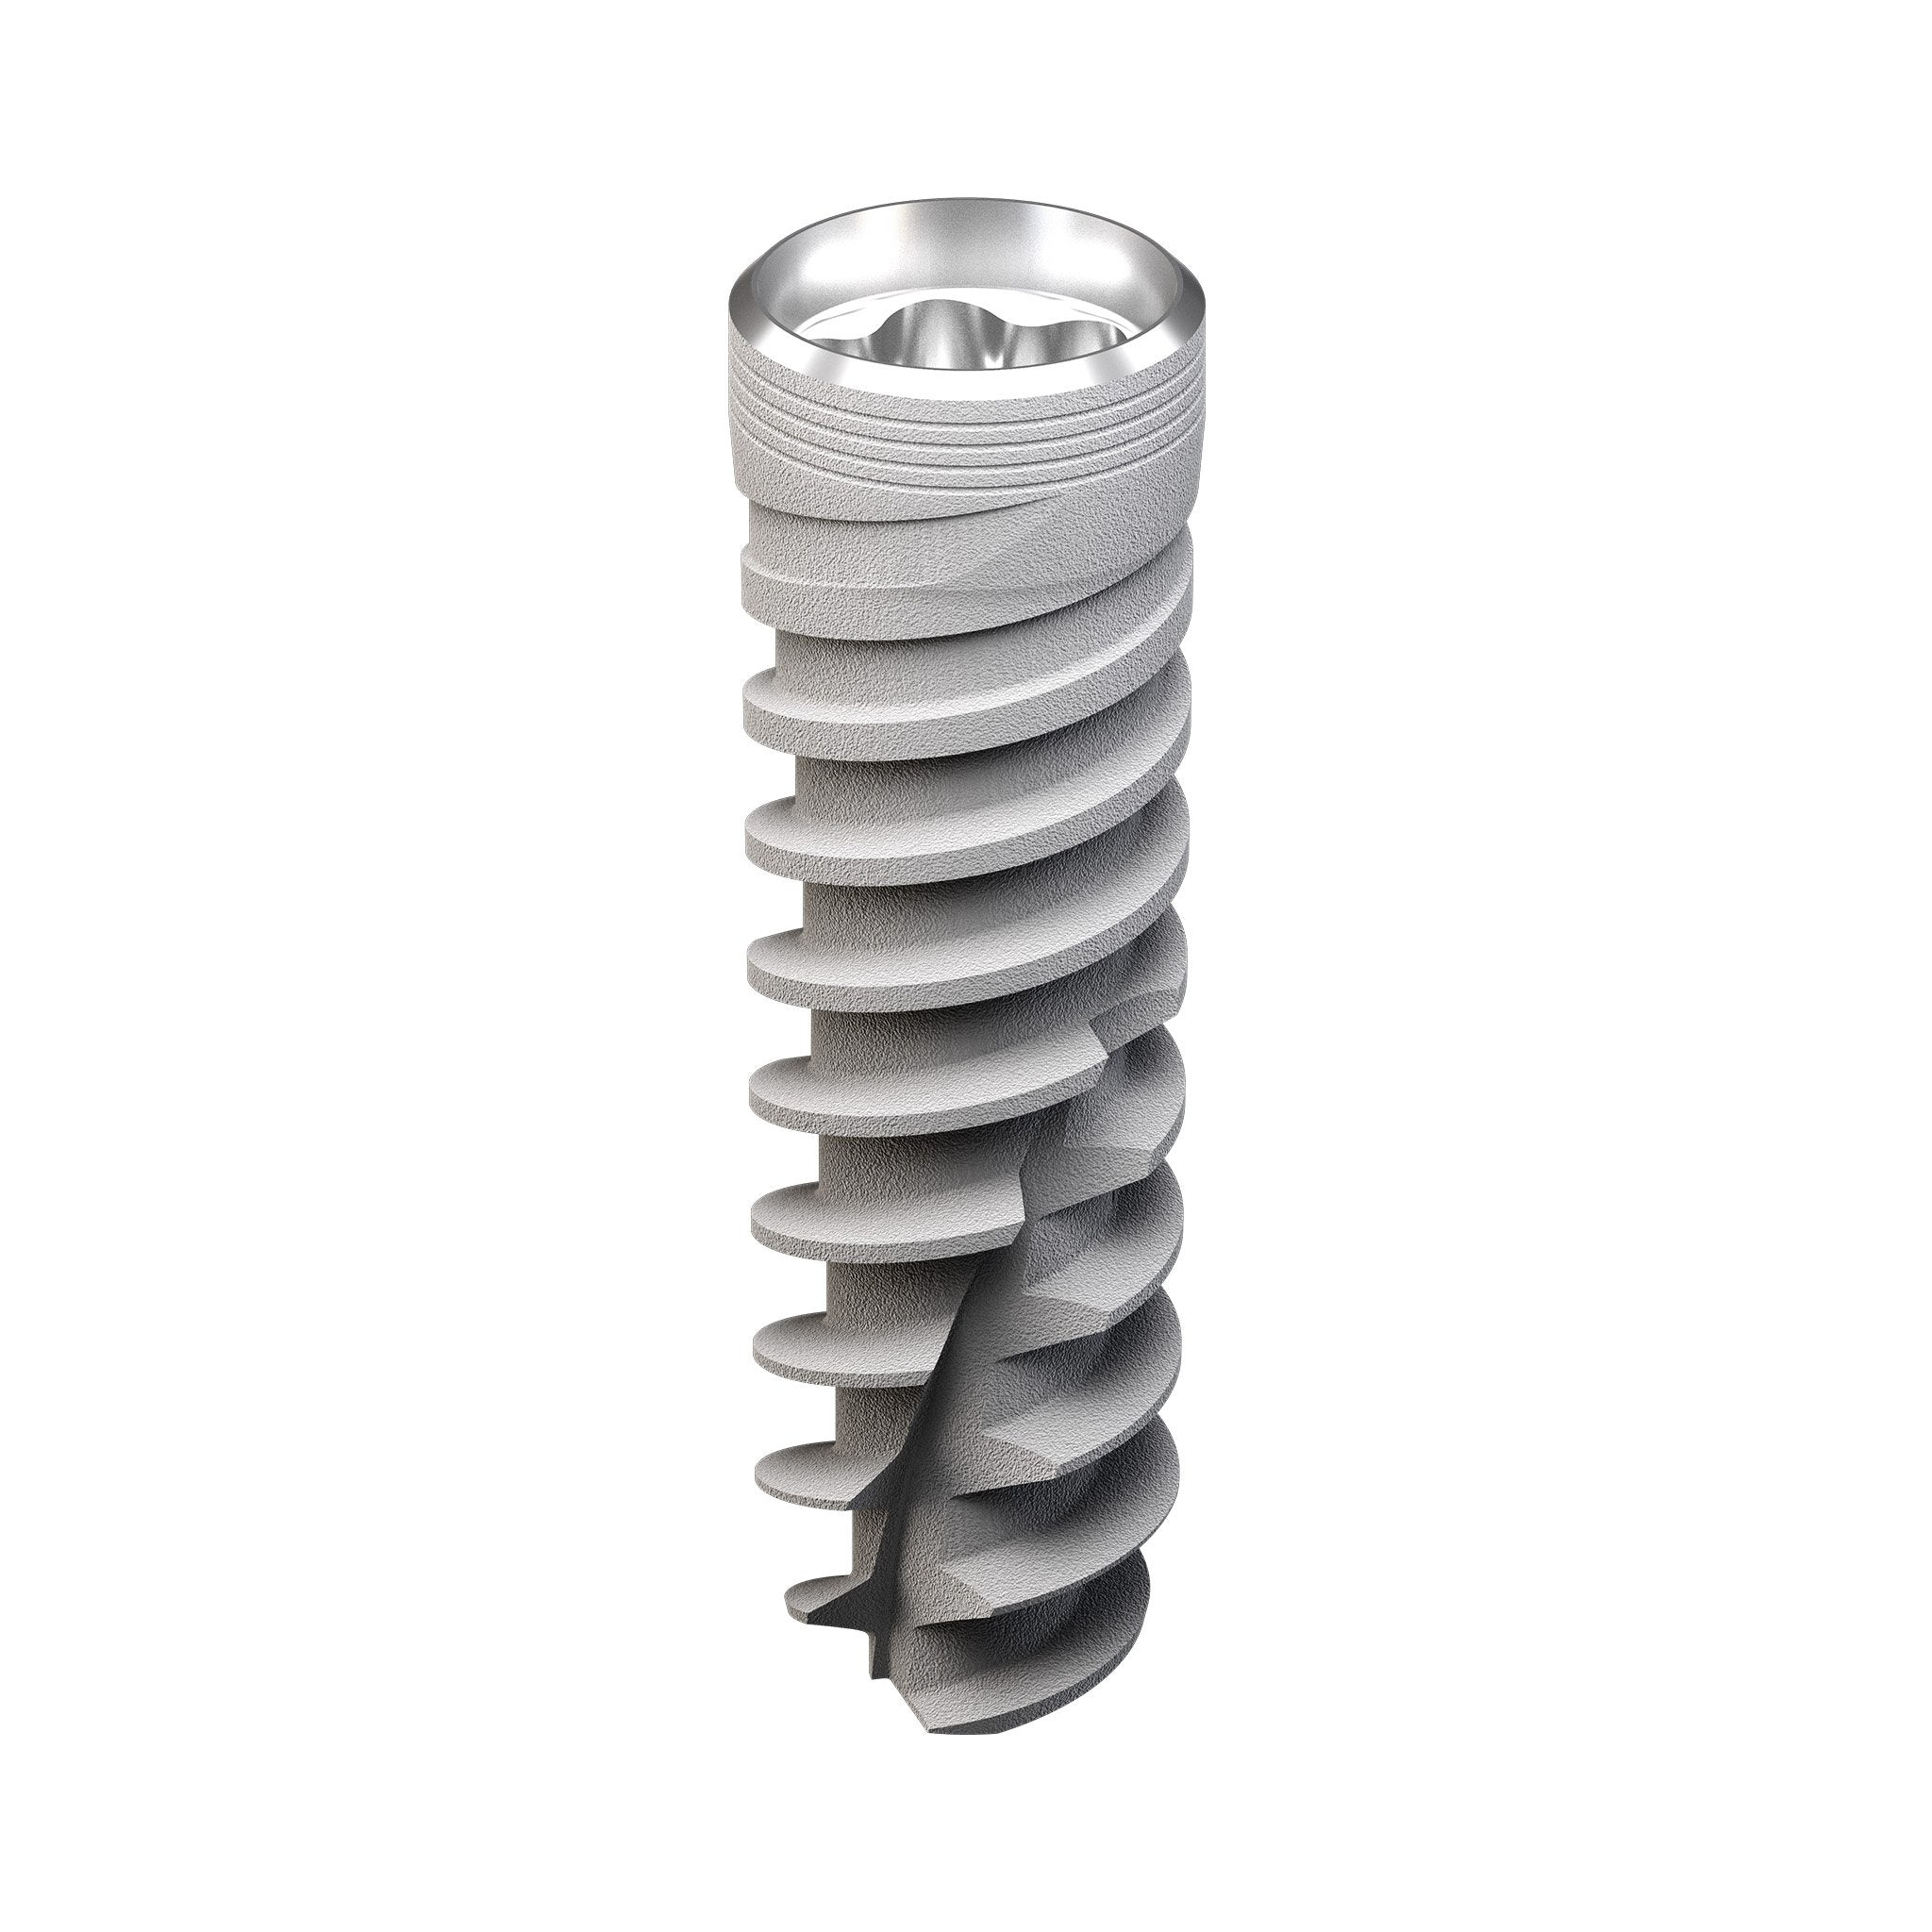 Prima Plus™ Implant WD Ø 5.0 x 13.0mm | K3